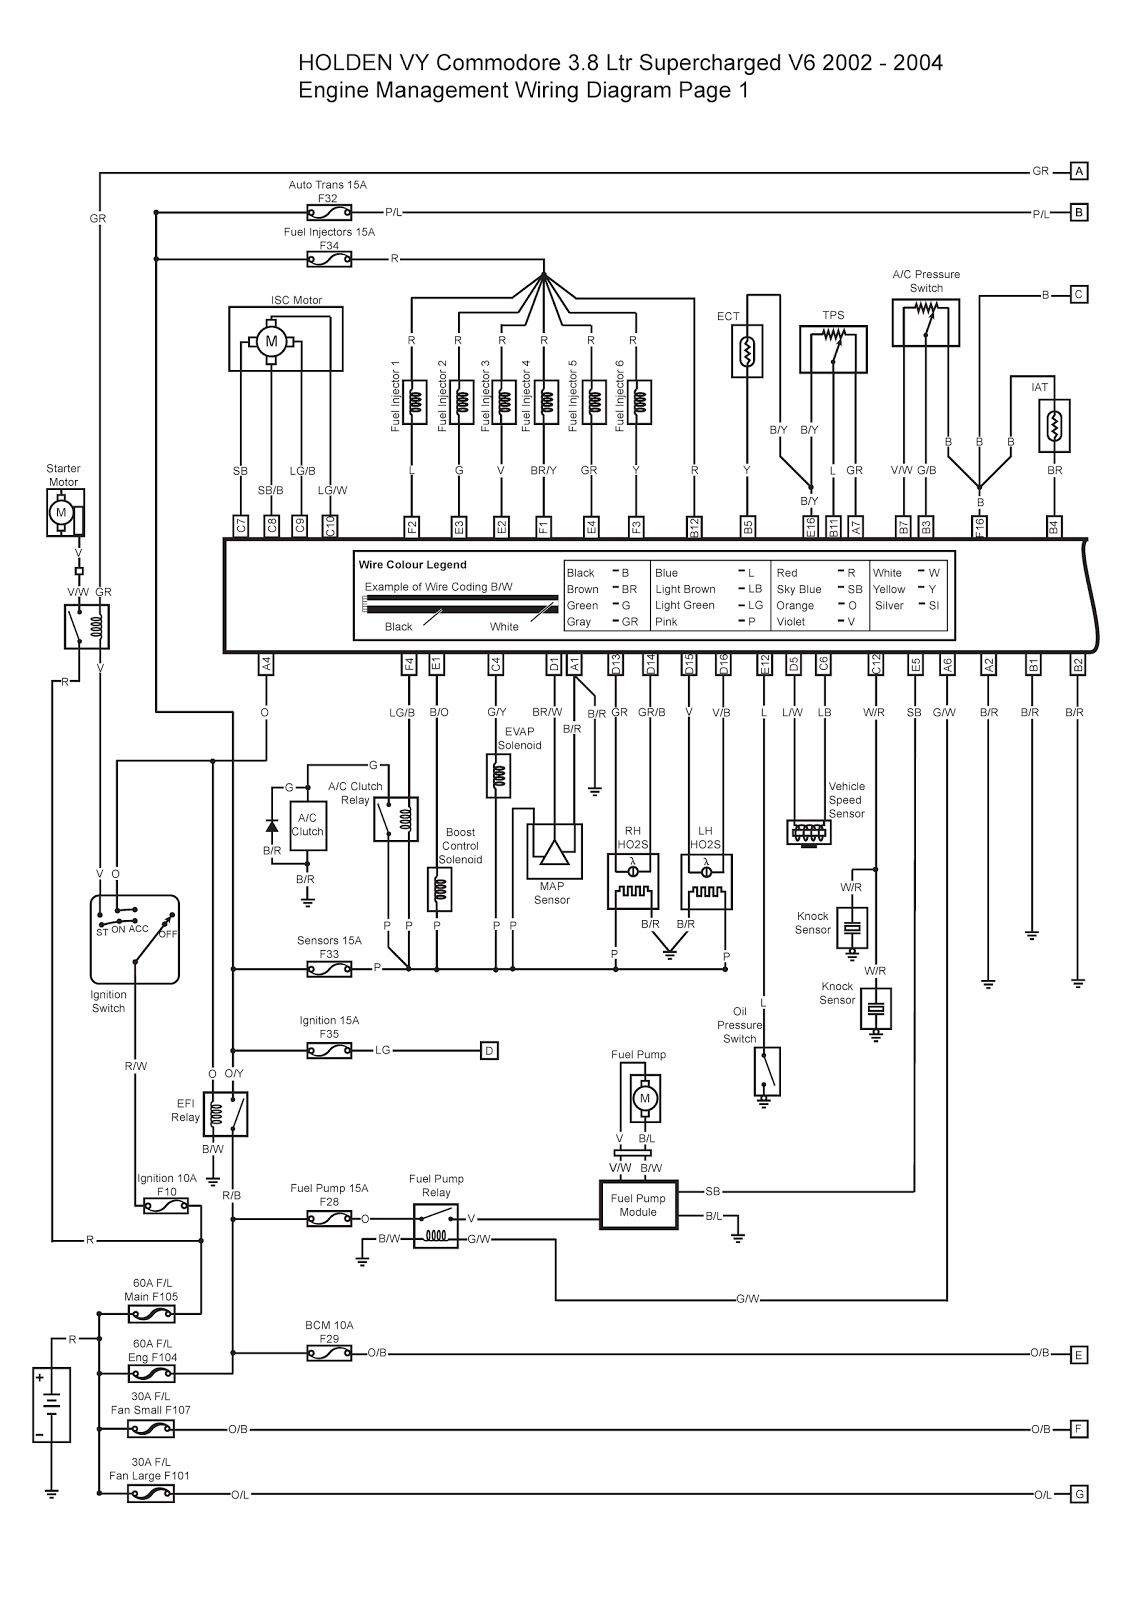 vz headlight wiring diagram obd0 distributor 5 post ignition switch free engine